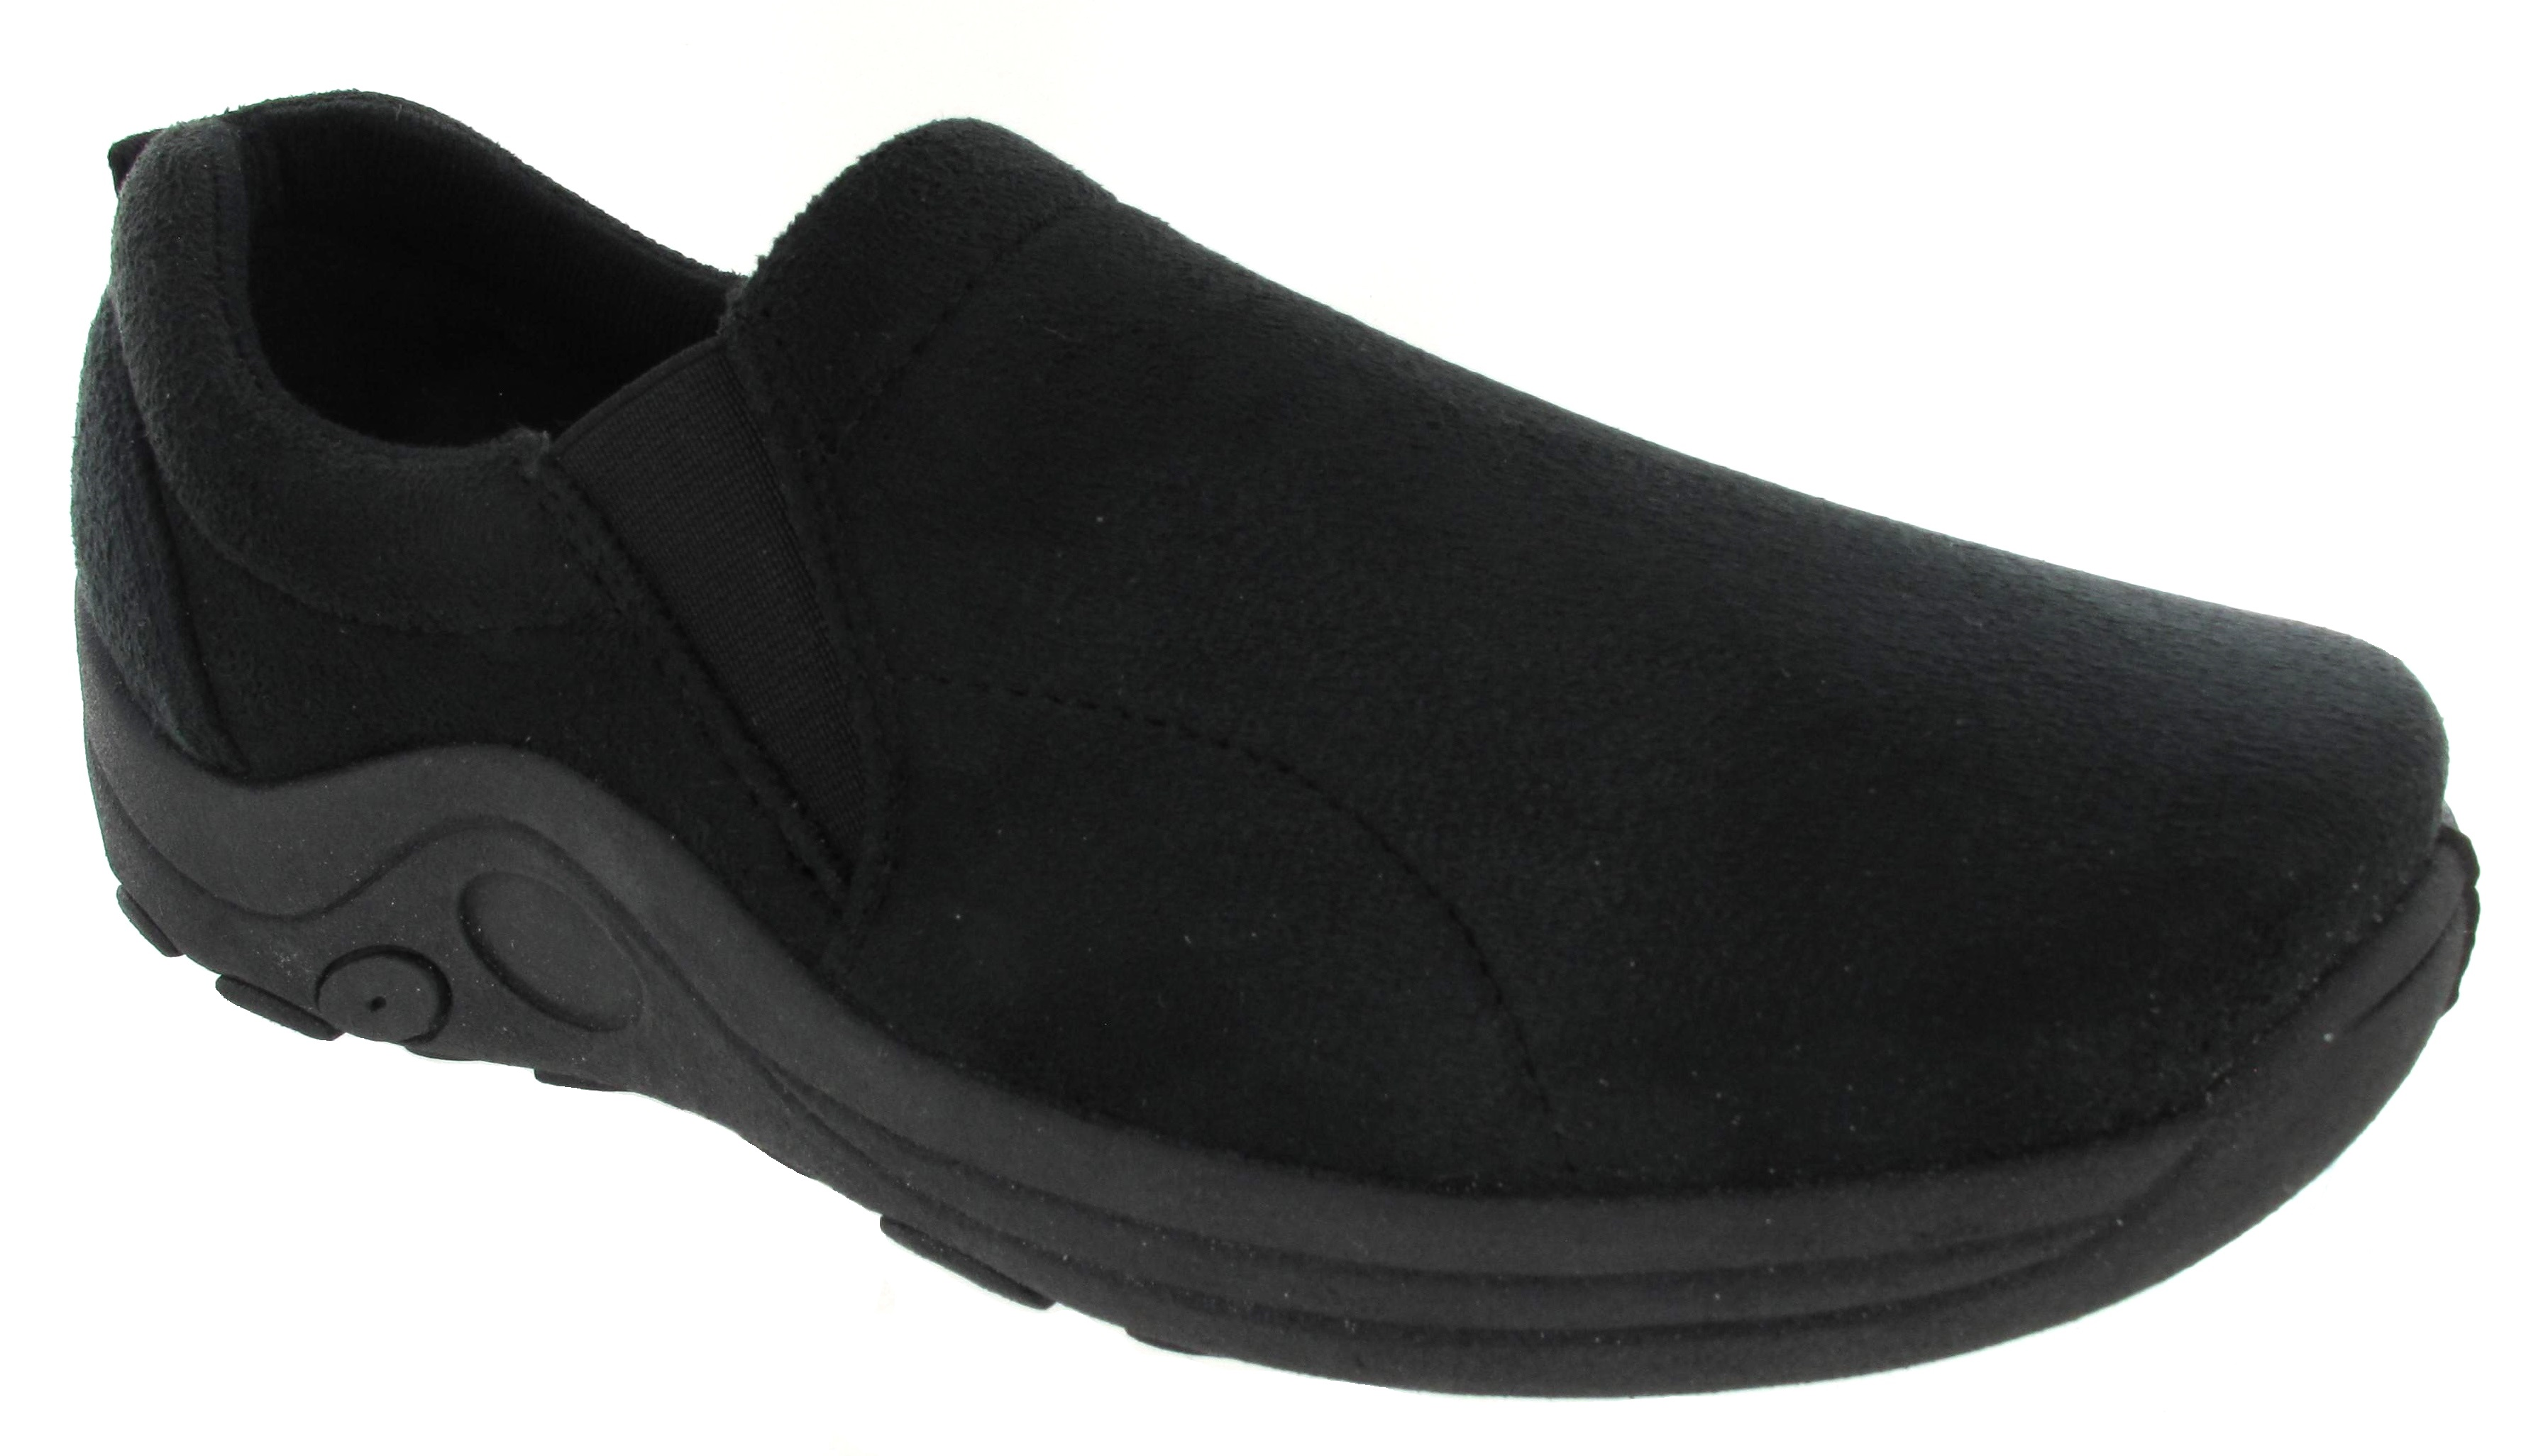 new mens womens slip on faux suede casual walking hiking